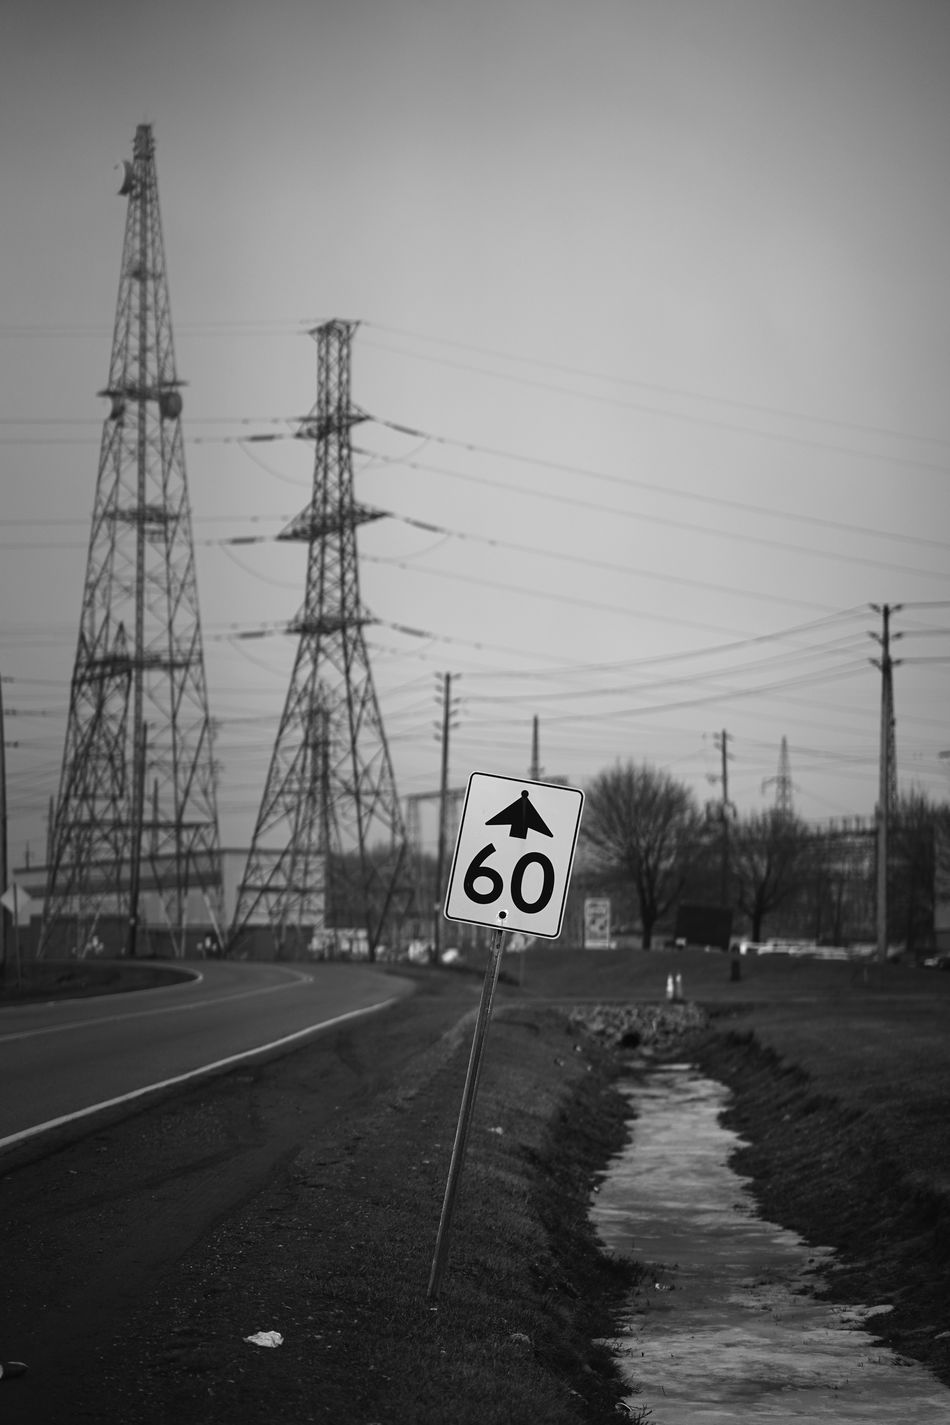 speed limit Cable Communication Connection Day Ditching Class Electricity Pylon Grass Grassy Monochrome No People Outdoors Powerlines Road Sky Speed Sign Wires